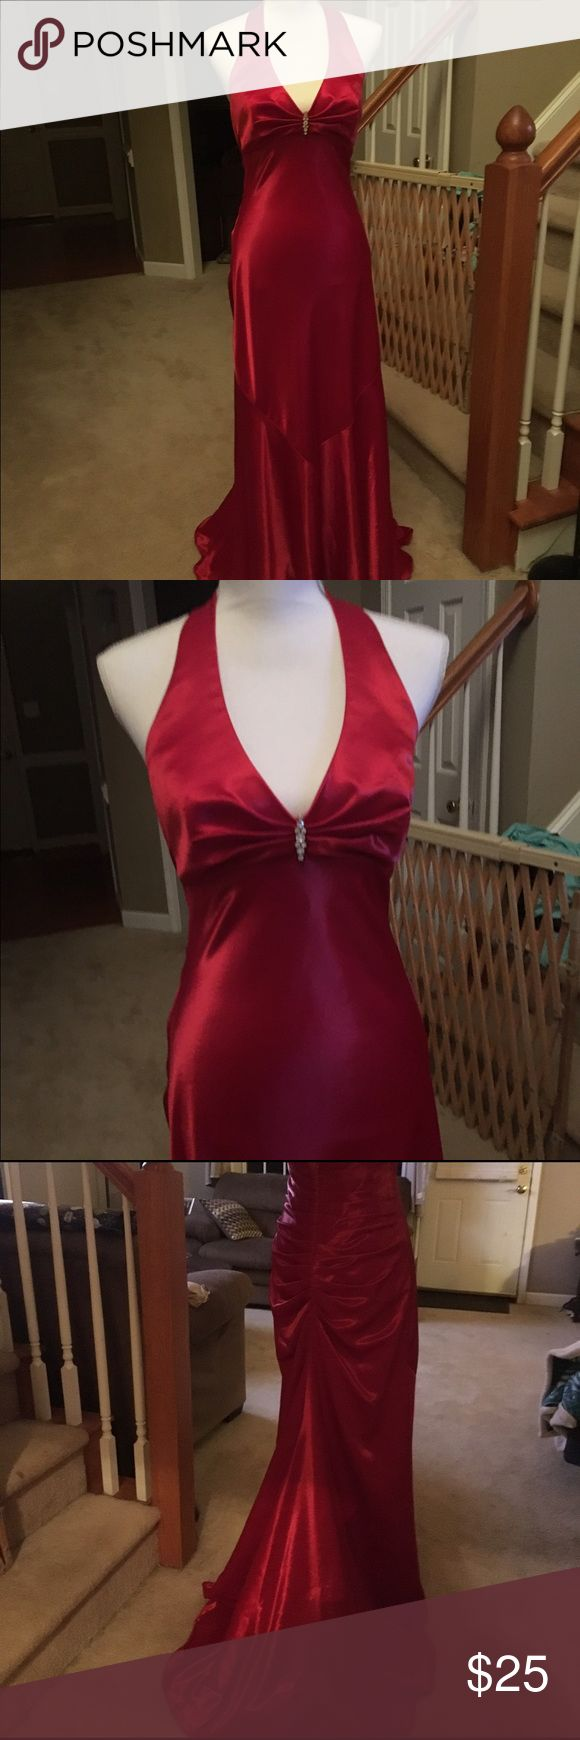 Formal gown This beautiful red gown is perfect for that formal night out, on a cruise or even prom. Perfect condition. No stains, tears or wear. Size 8 Dave & Johnny Dresses Backless